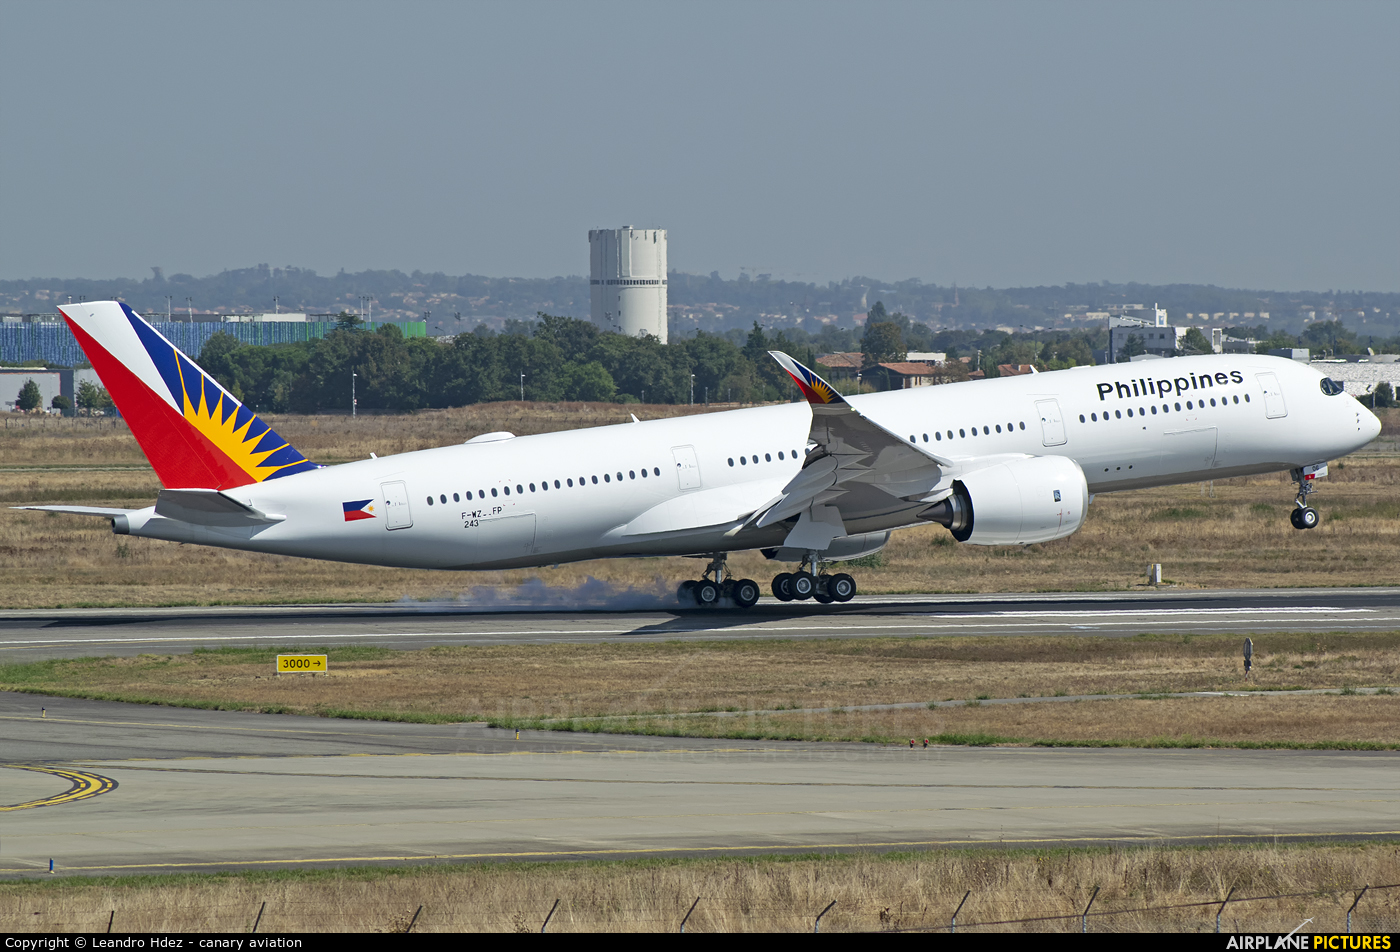 Philippines Airlines F-WZFP aircraft at Toulouse - Blagnac